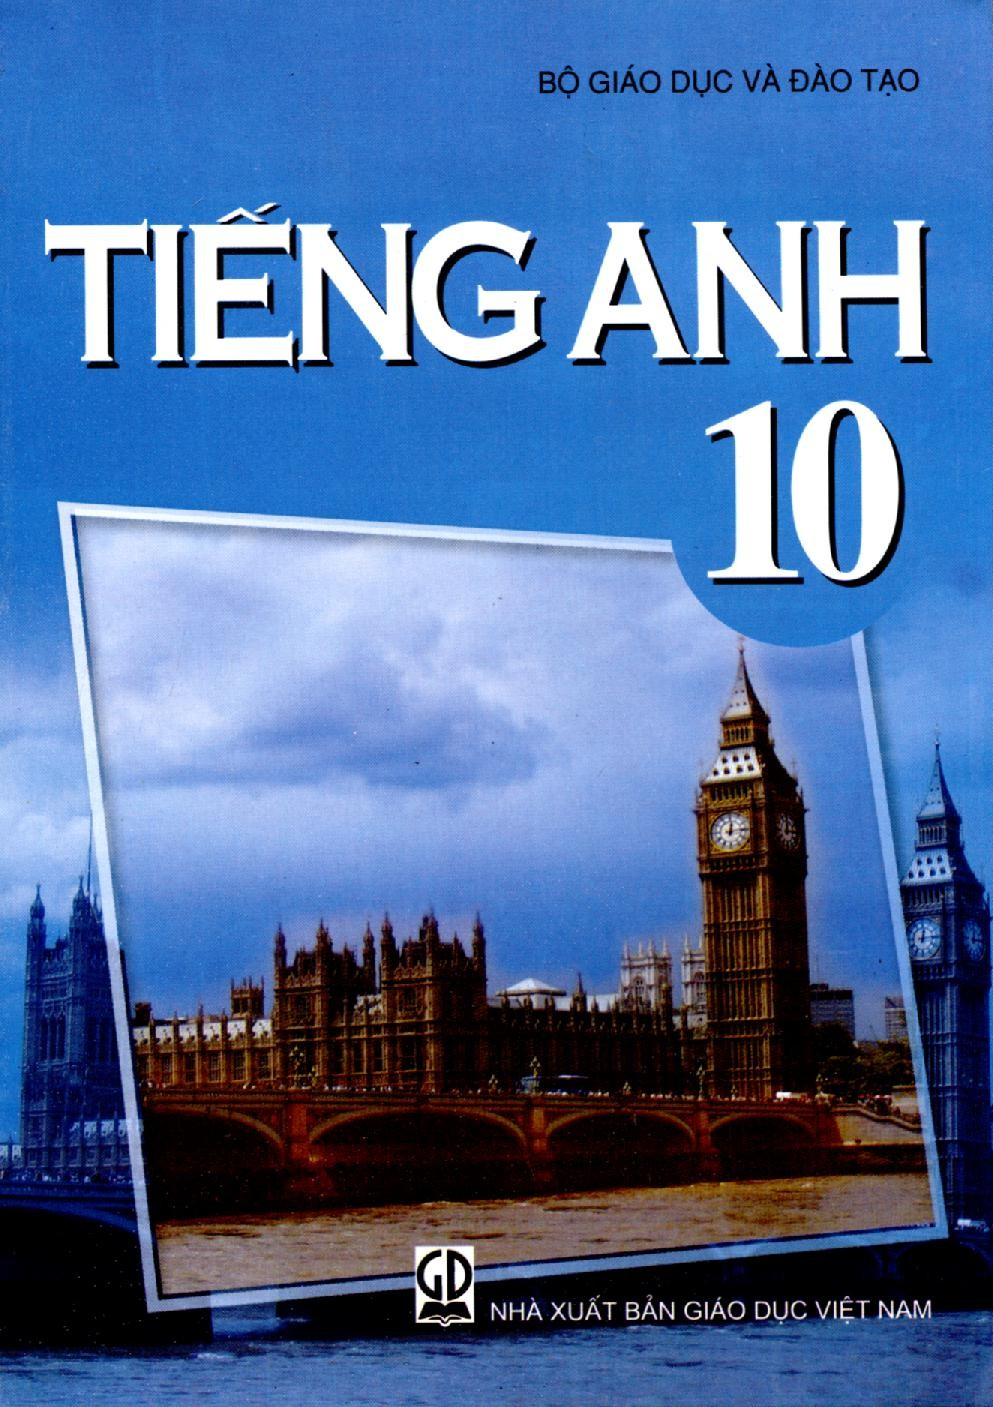 http://www.tienganhphuquoc.com/2017/06/hoc-them-tieng-anh-lop-10.html